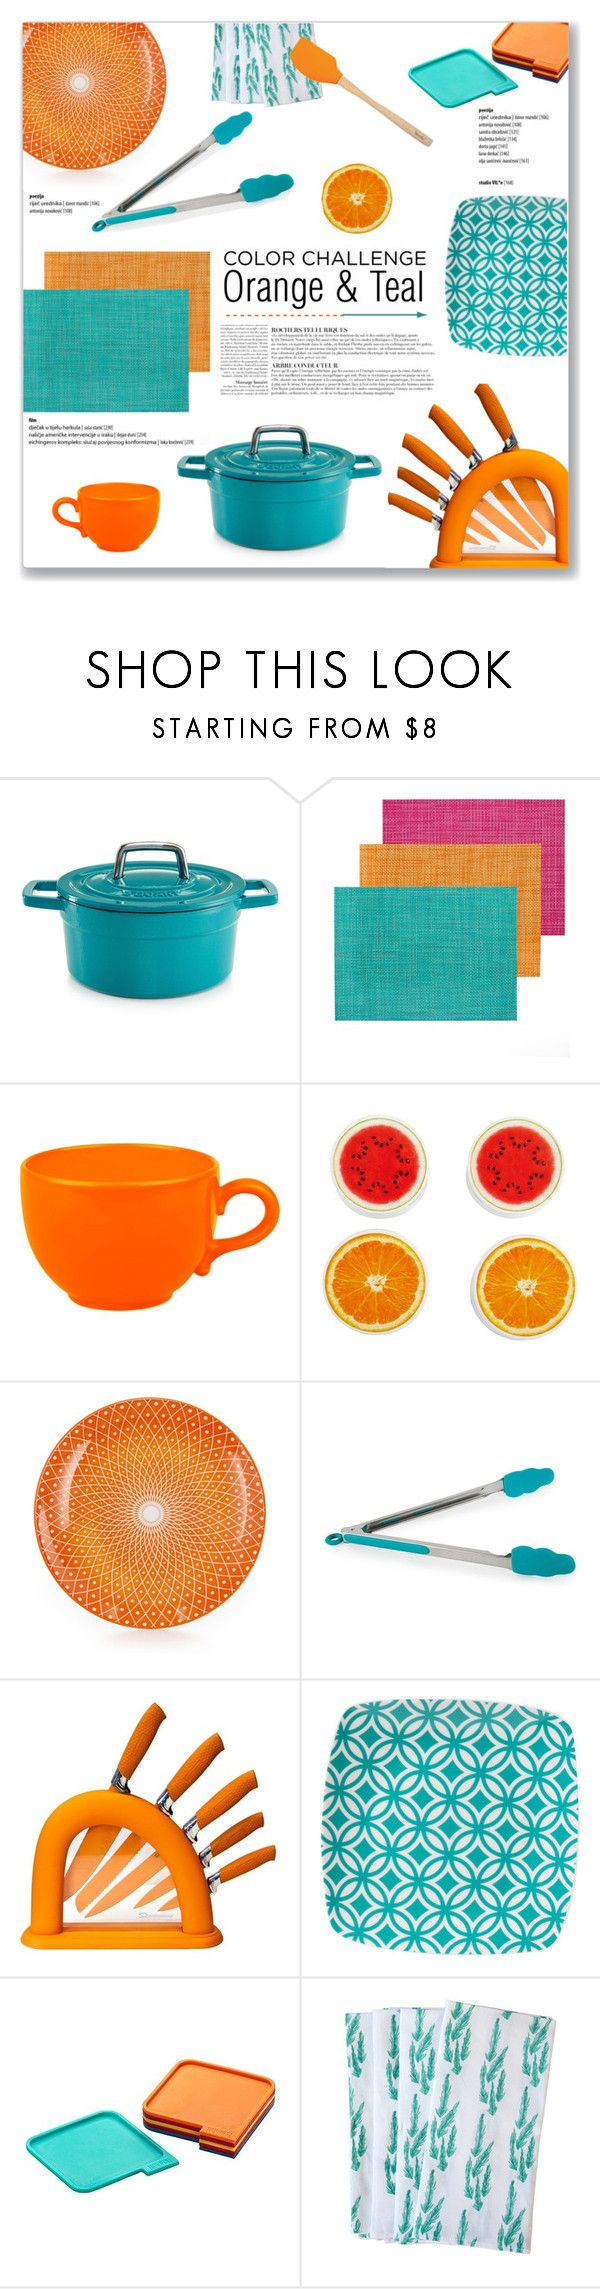 """Orange & Teal Kitchen Accessories"" by kellylynne68 ❤ liked on Polyvore featuring interior, interiors, interior design, home, home decor, interior decorating, Martha Stewart, Chilewich, Waechtersbach and Farberware"